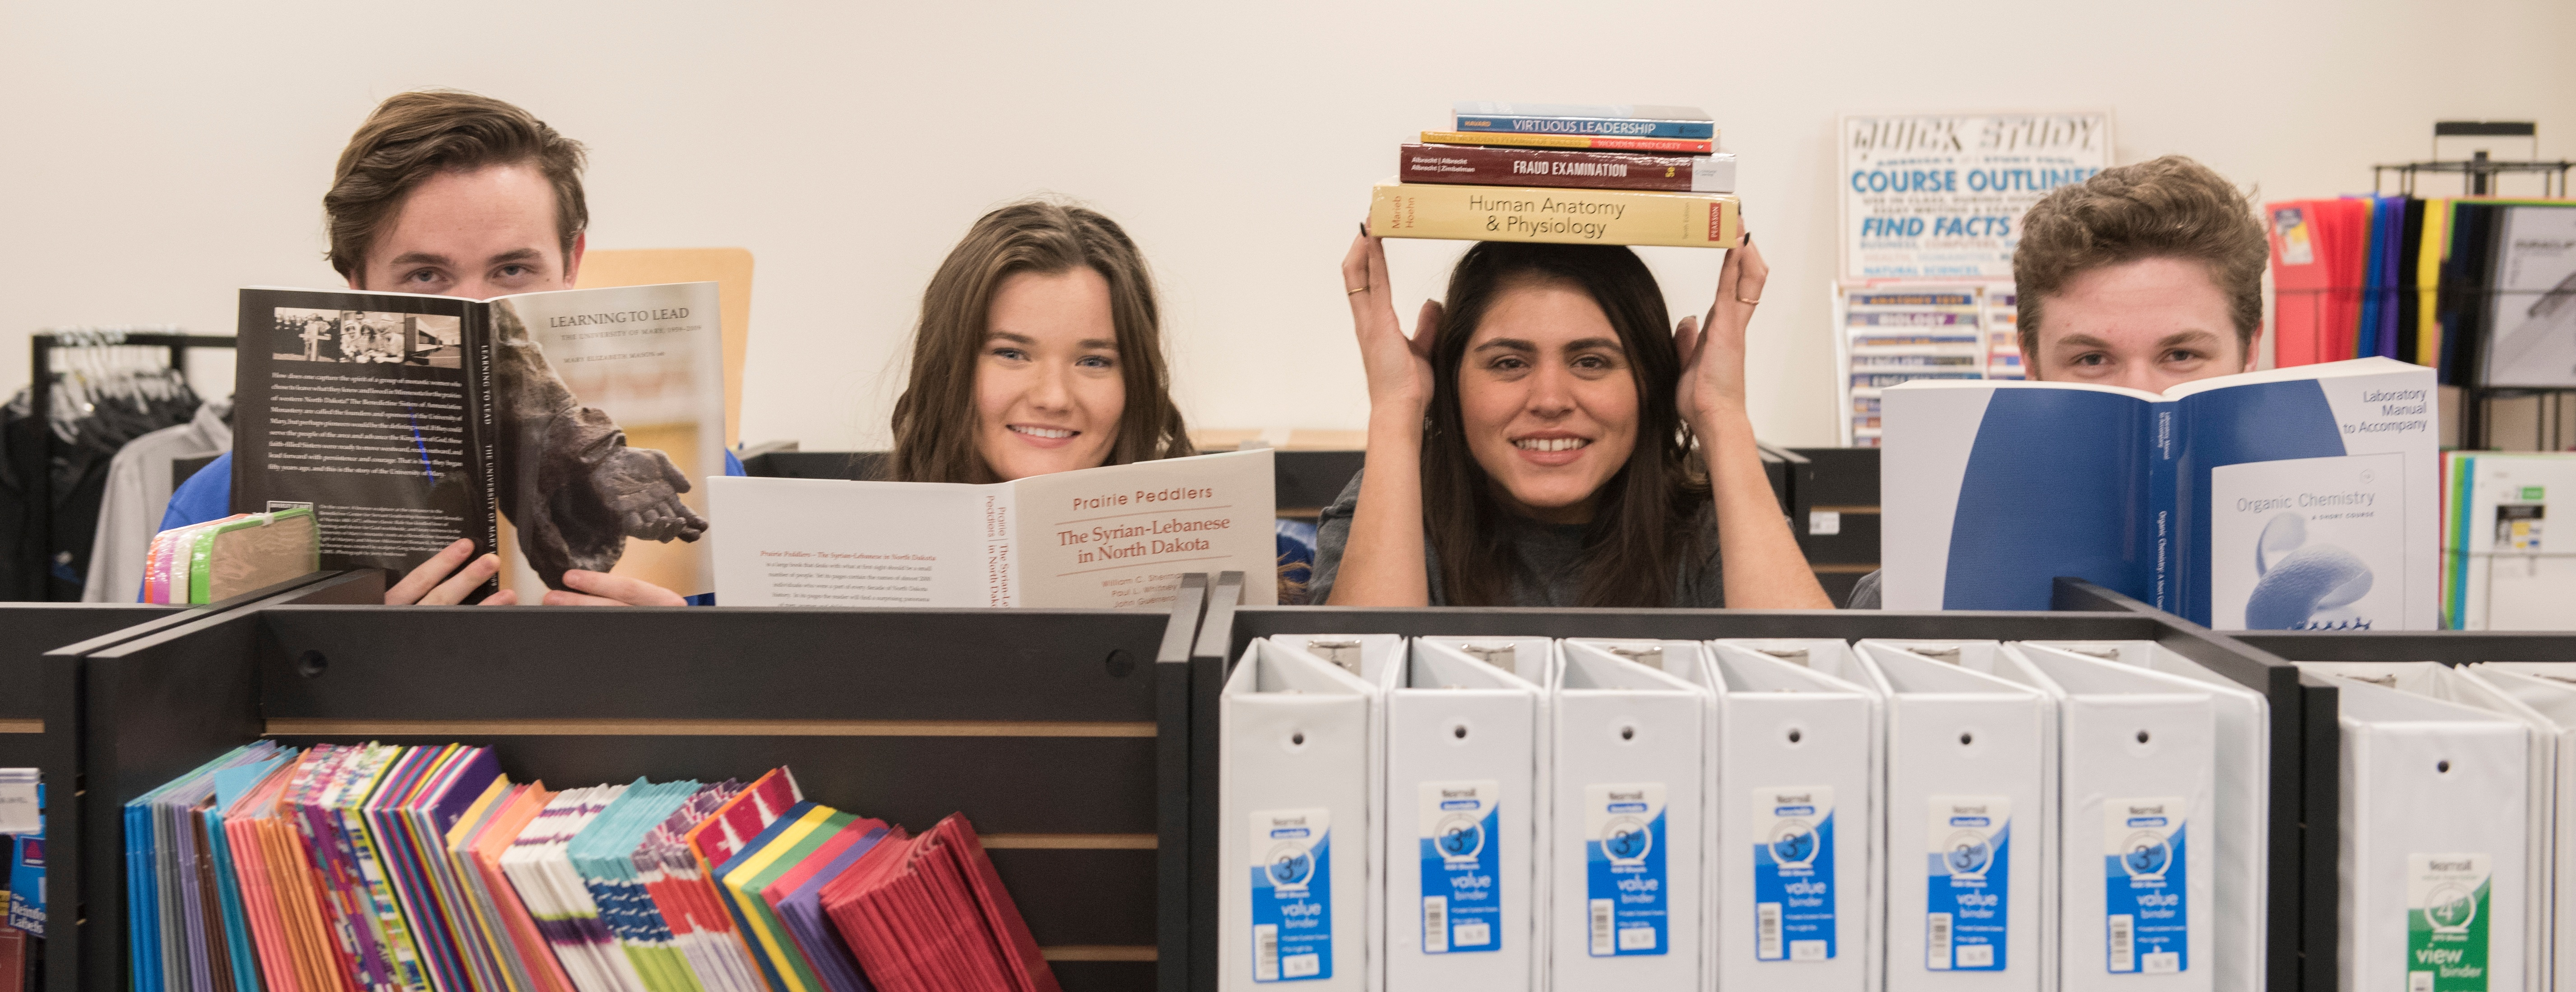 Location, Location, Location: University of Mary Bookstore Makes the Most Out of Its New Locale